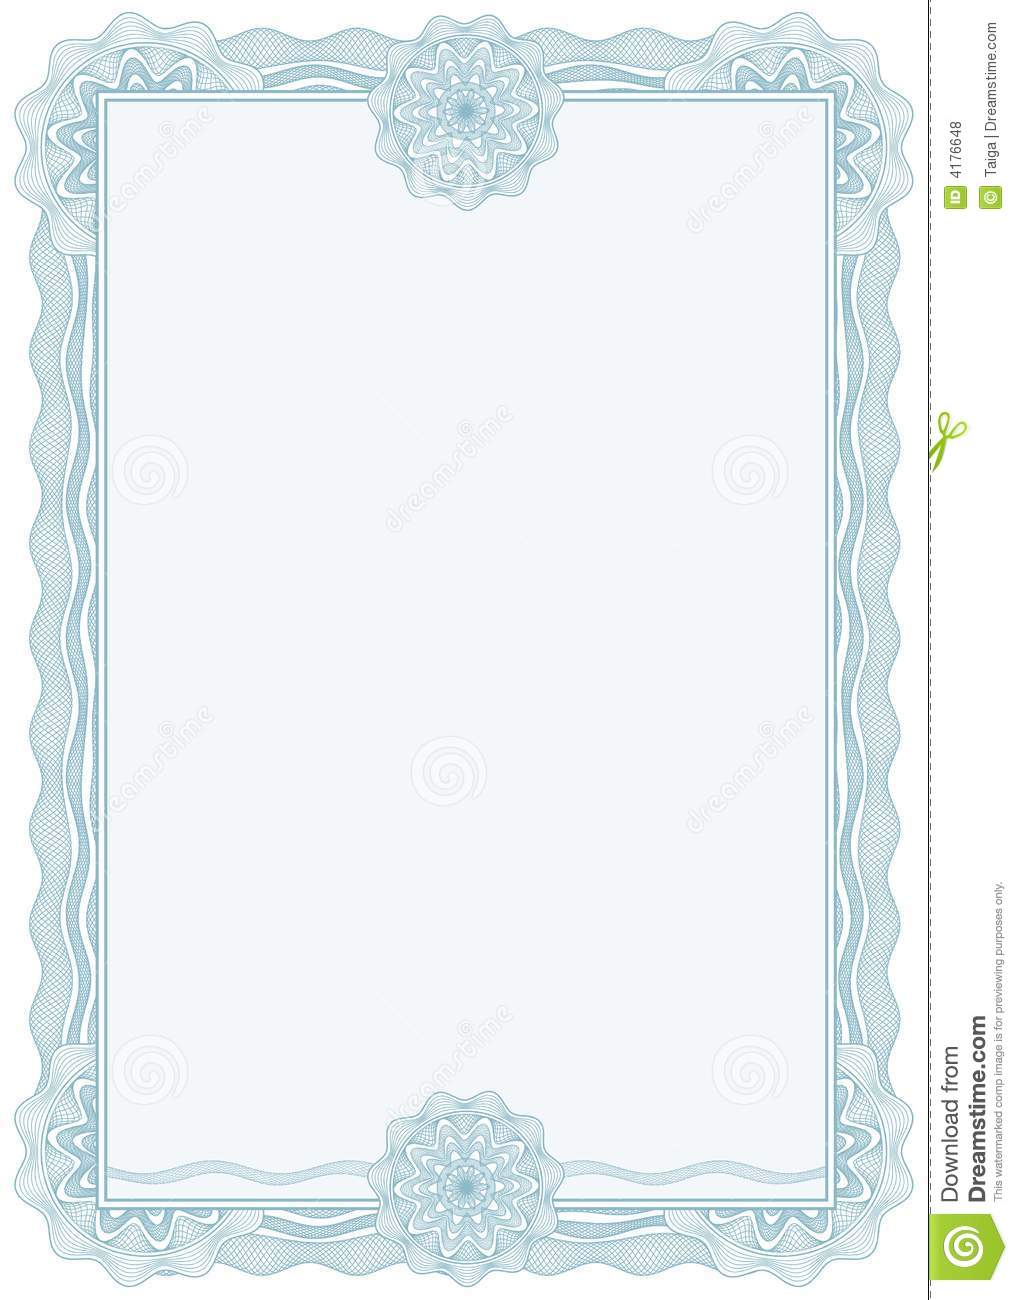 Diploma or certificate border a4 vector stock vector diploma or certificate border a4 vector yadclub Choice Image